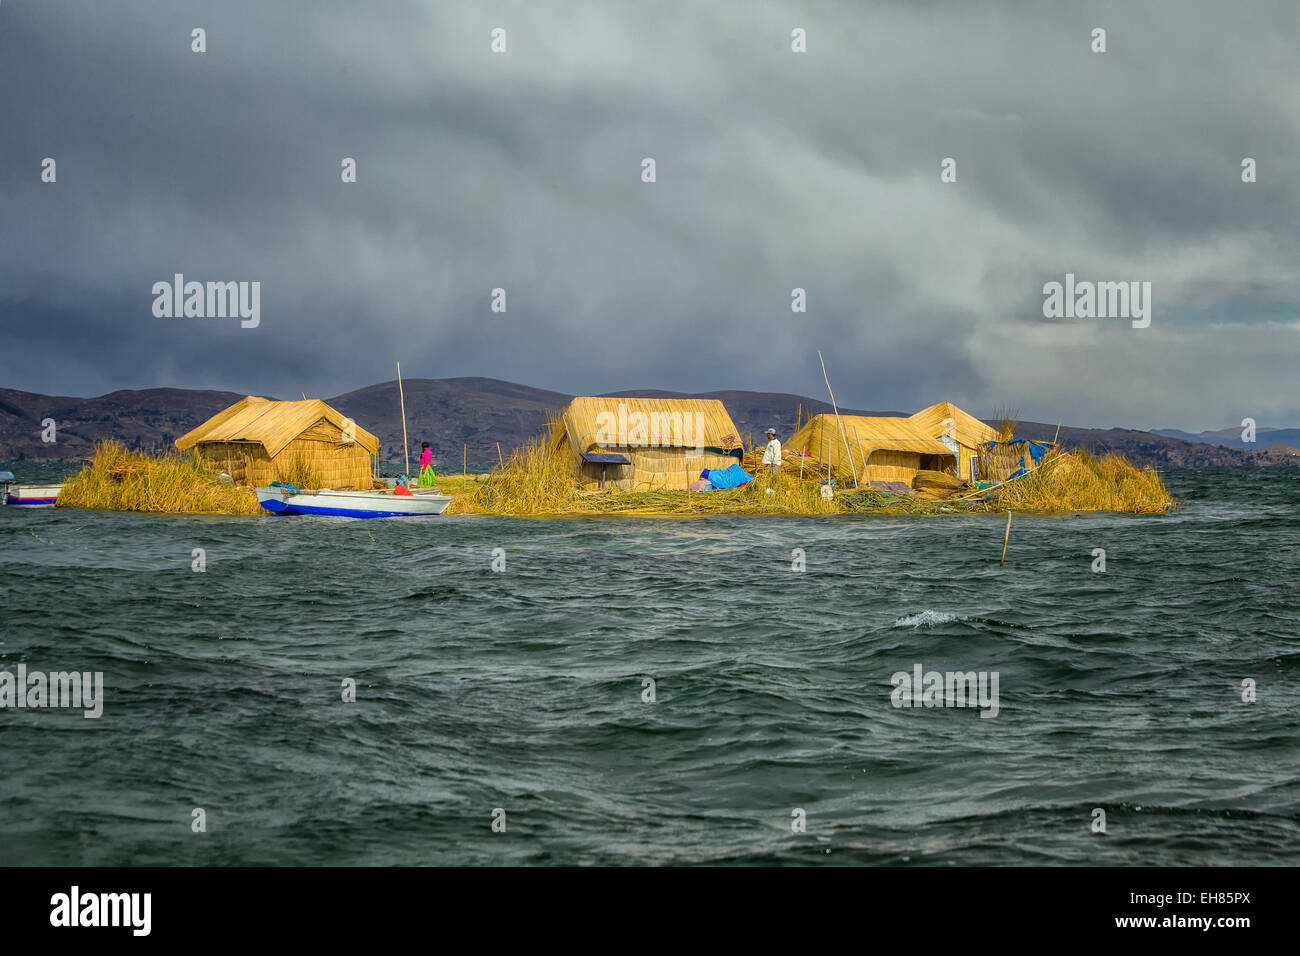 The floating Islands of lake Titicaca in Peru - Stock Image